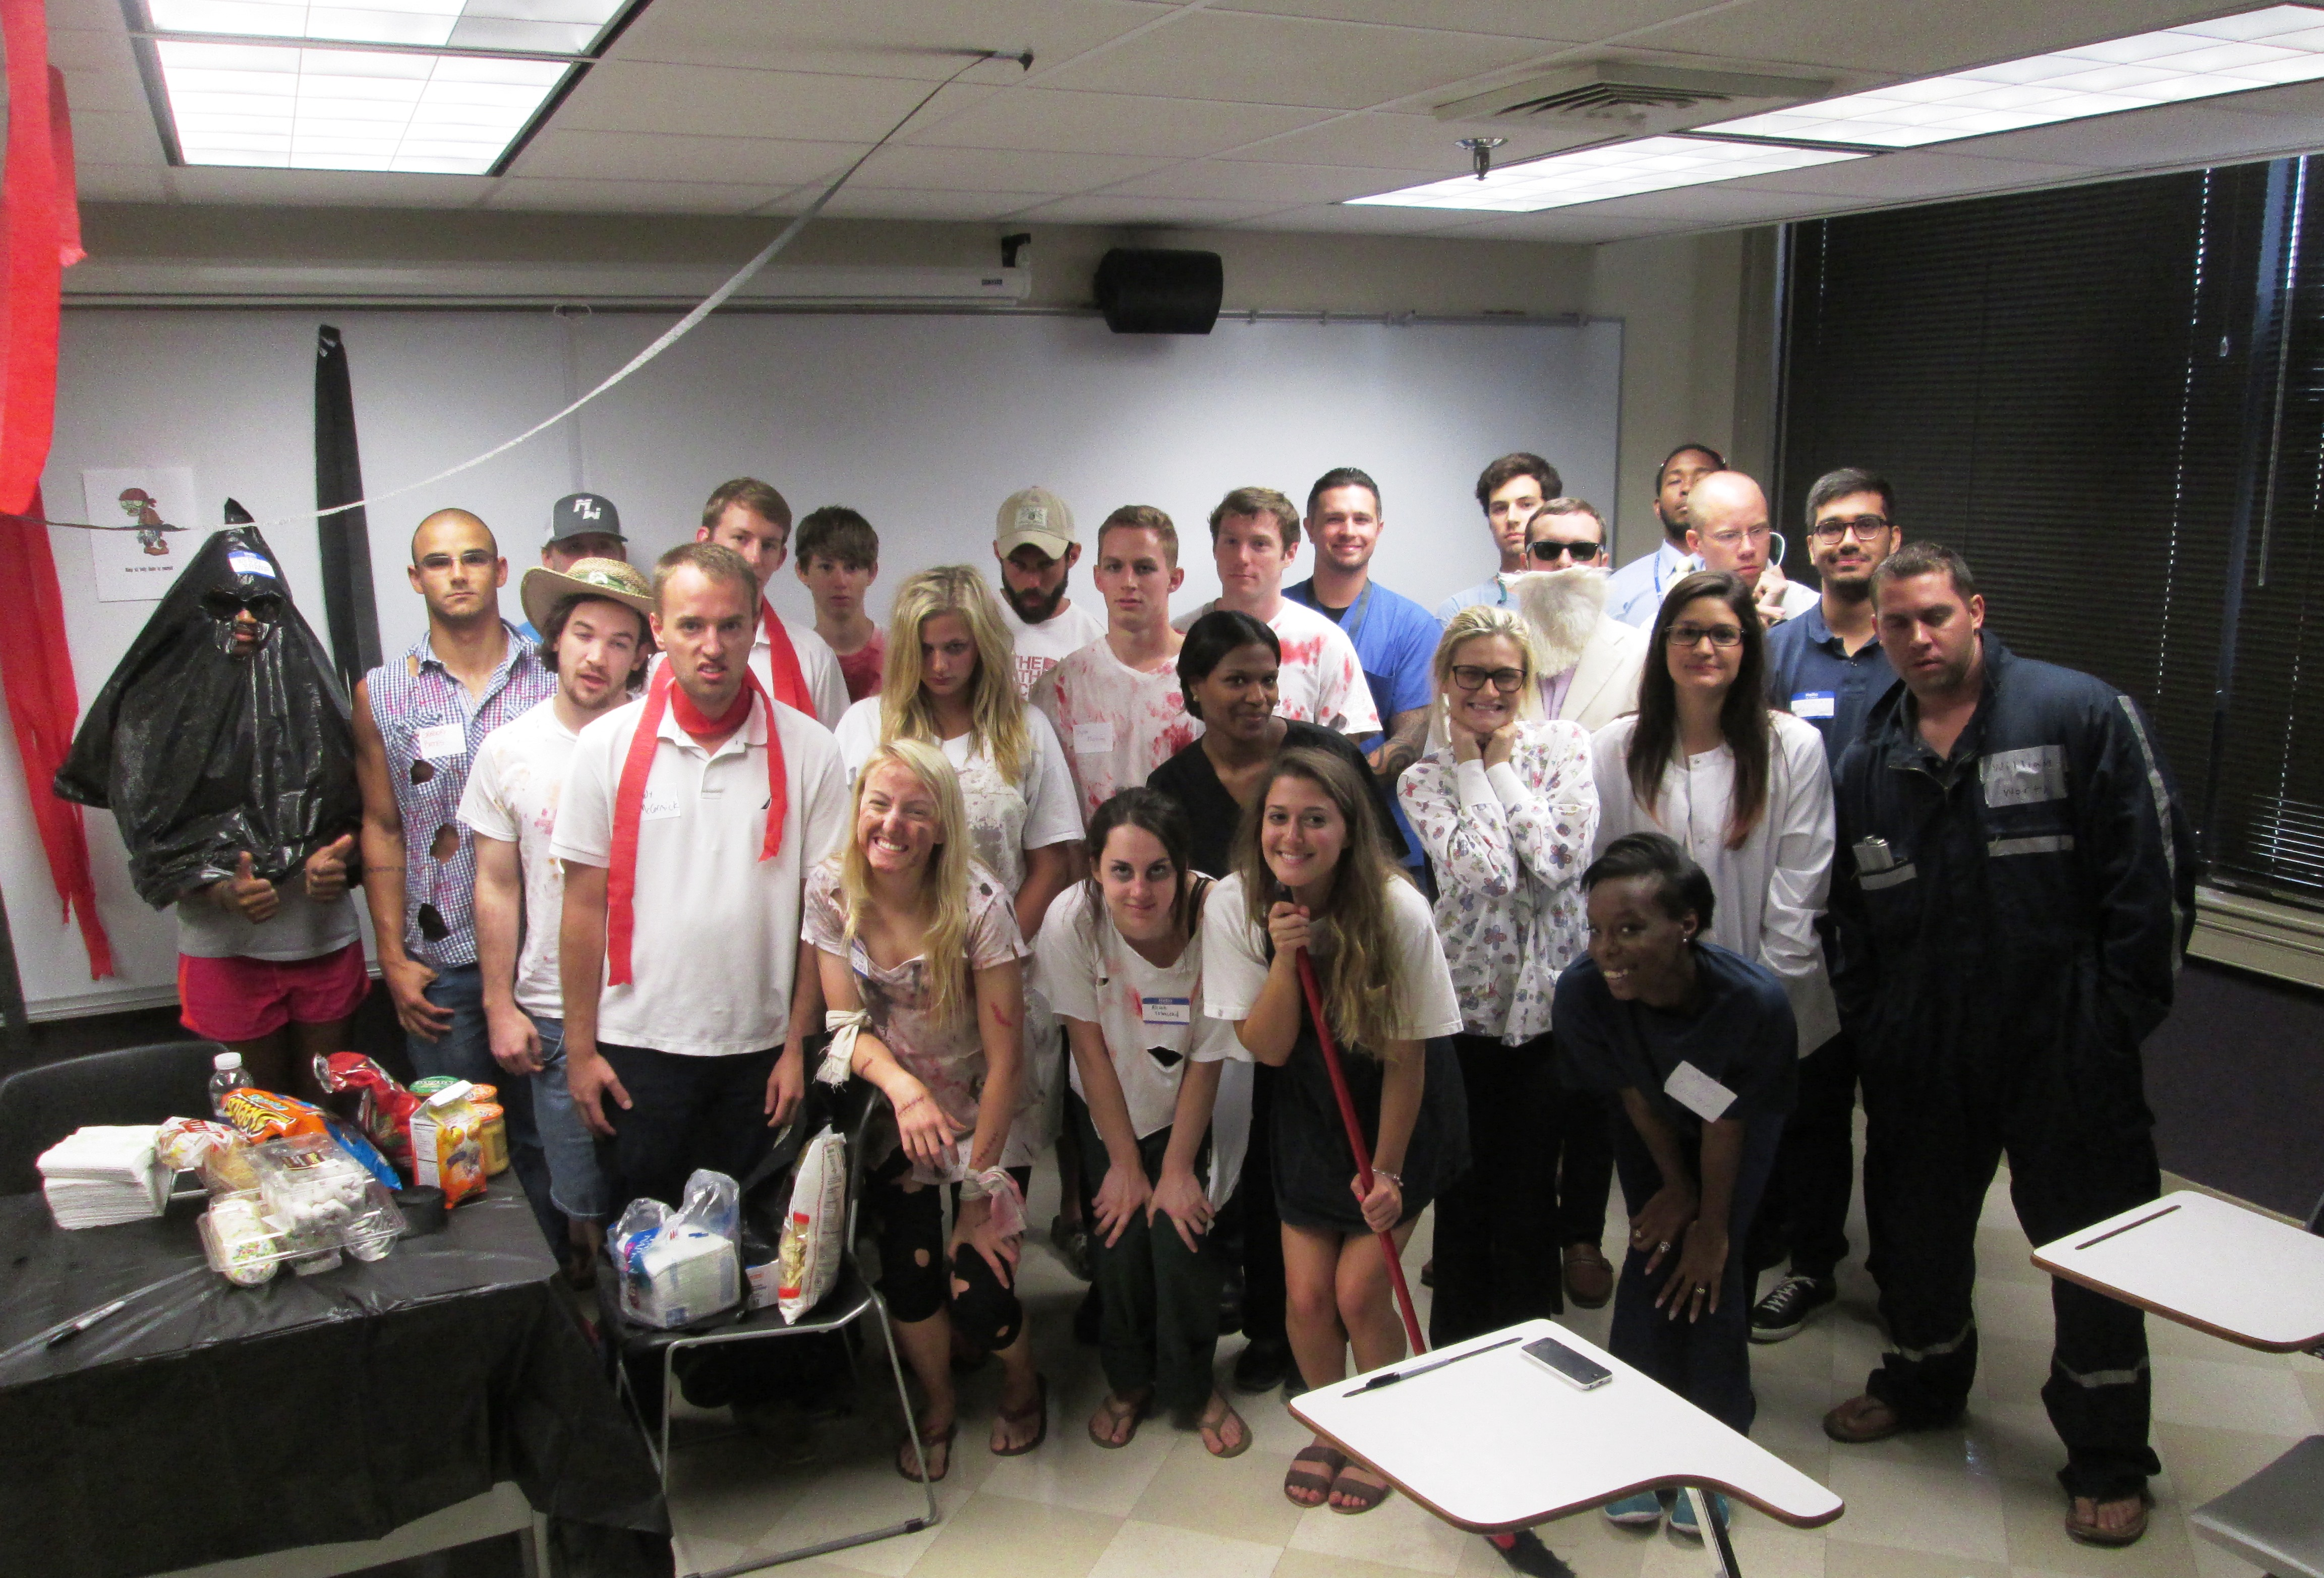 Group shot of class for zombie-themed murder mystery party